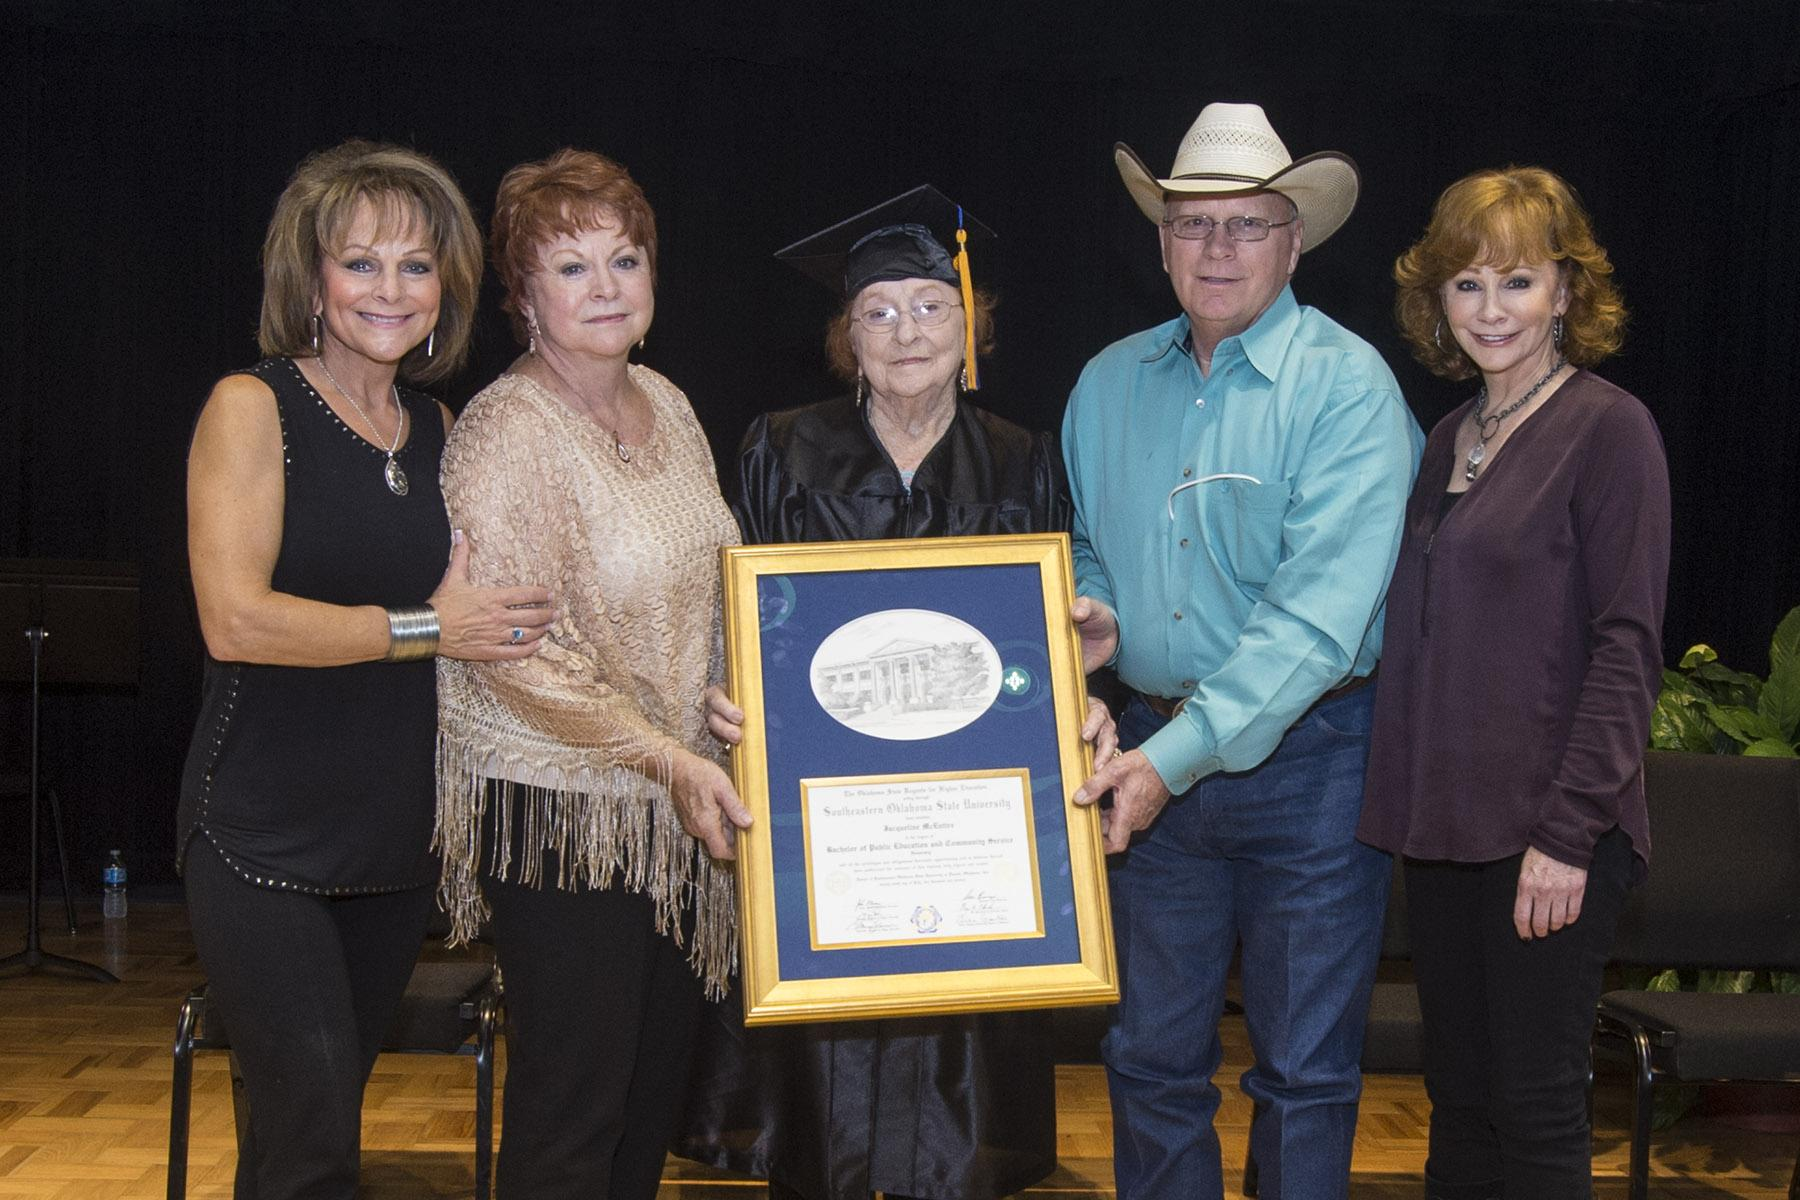 Mrs. Jacqueline McEntire, center, holds the honorary degree she received from Southeastern Thursday. Joining her are her children, Susie McEntire-Eaton, Alice Foran, Pake McEntire, and Reba McEntire.